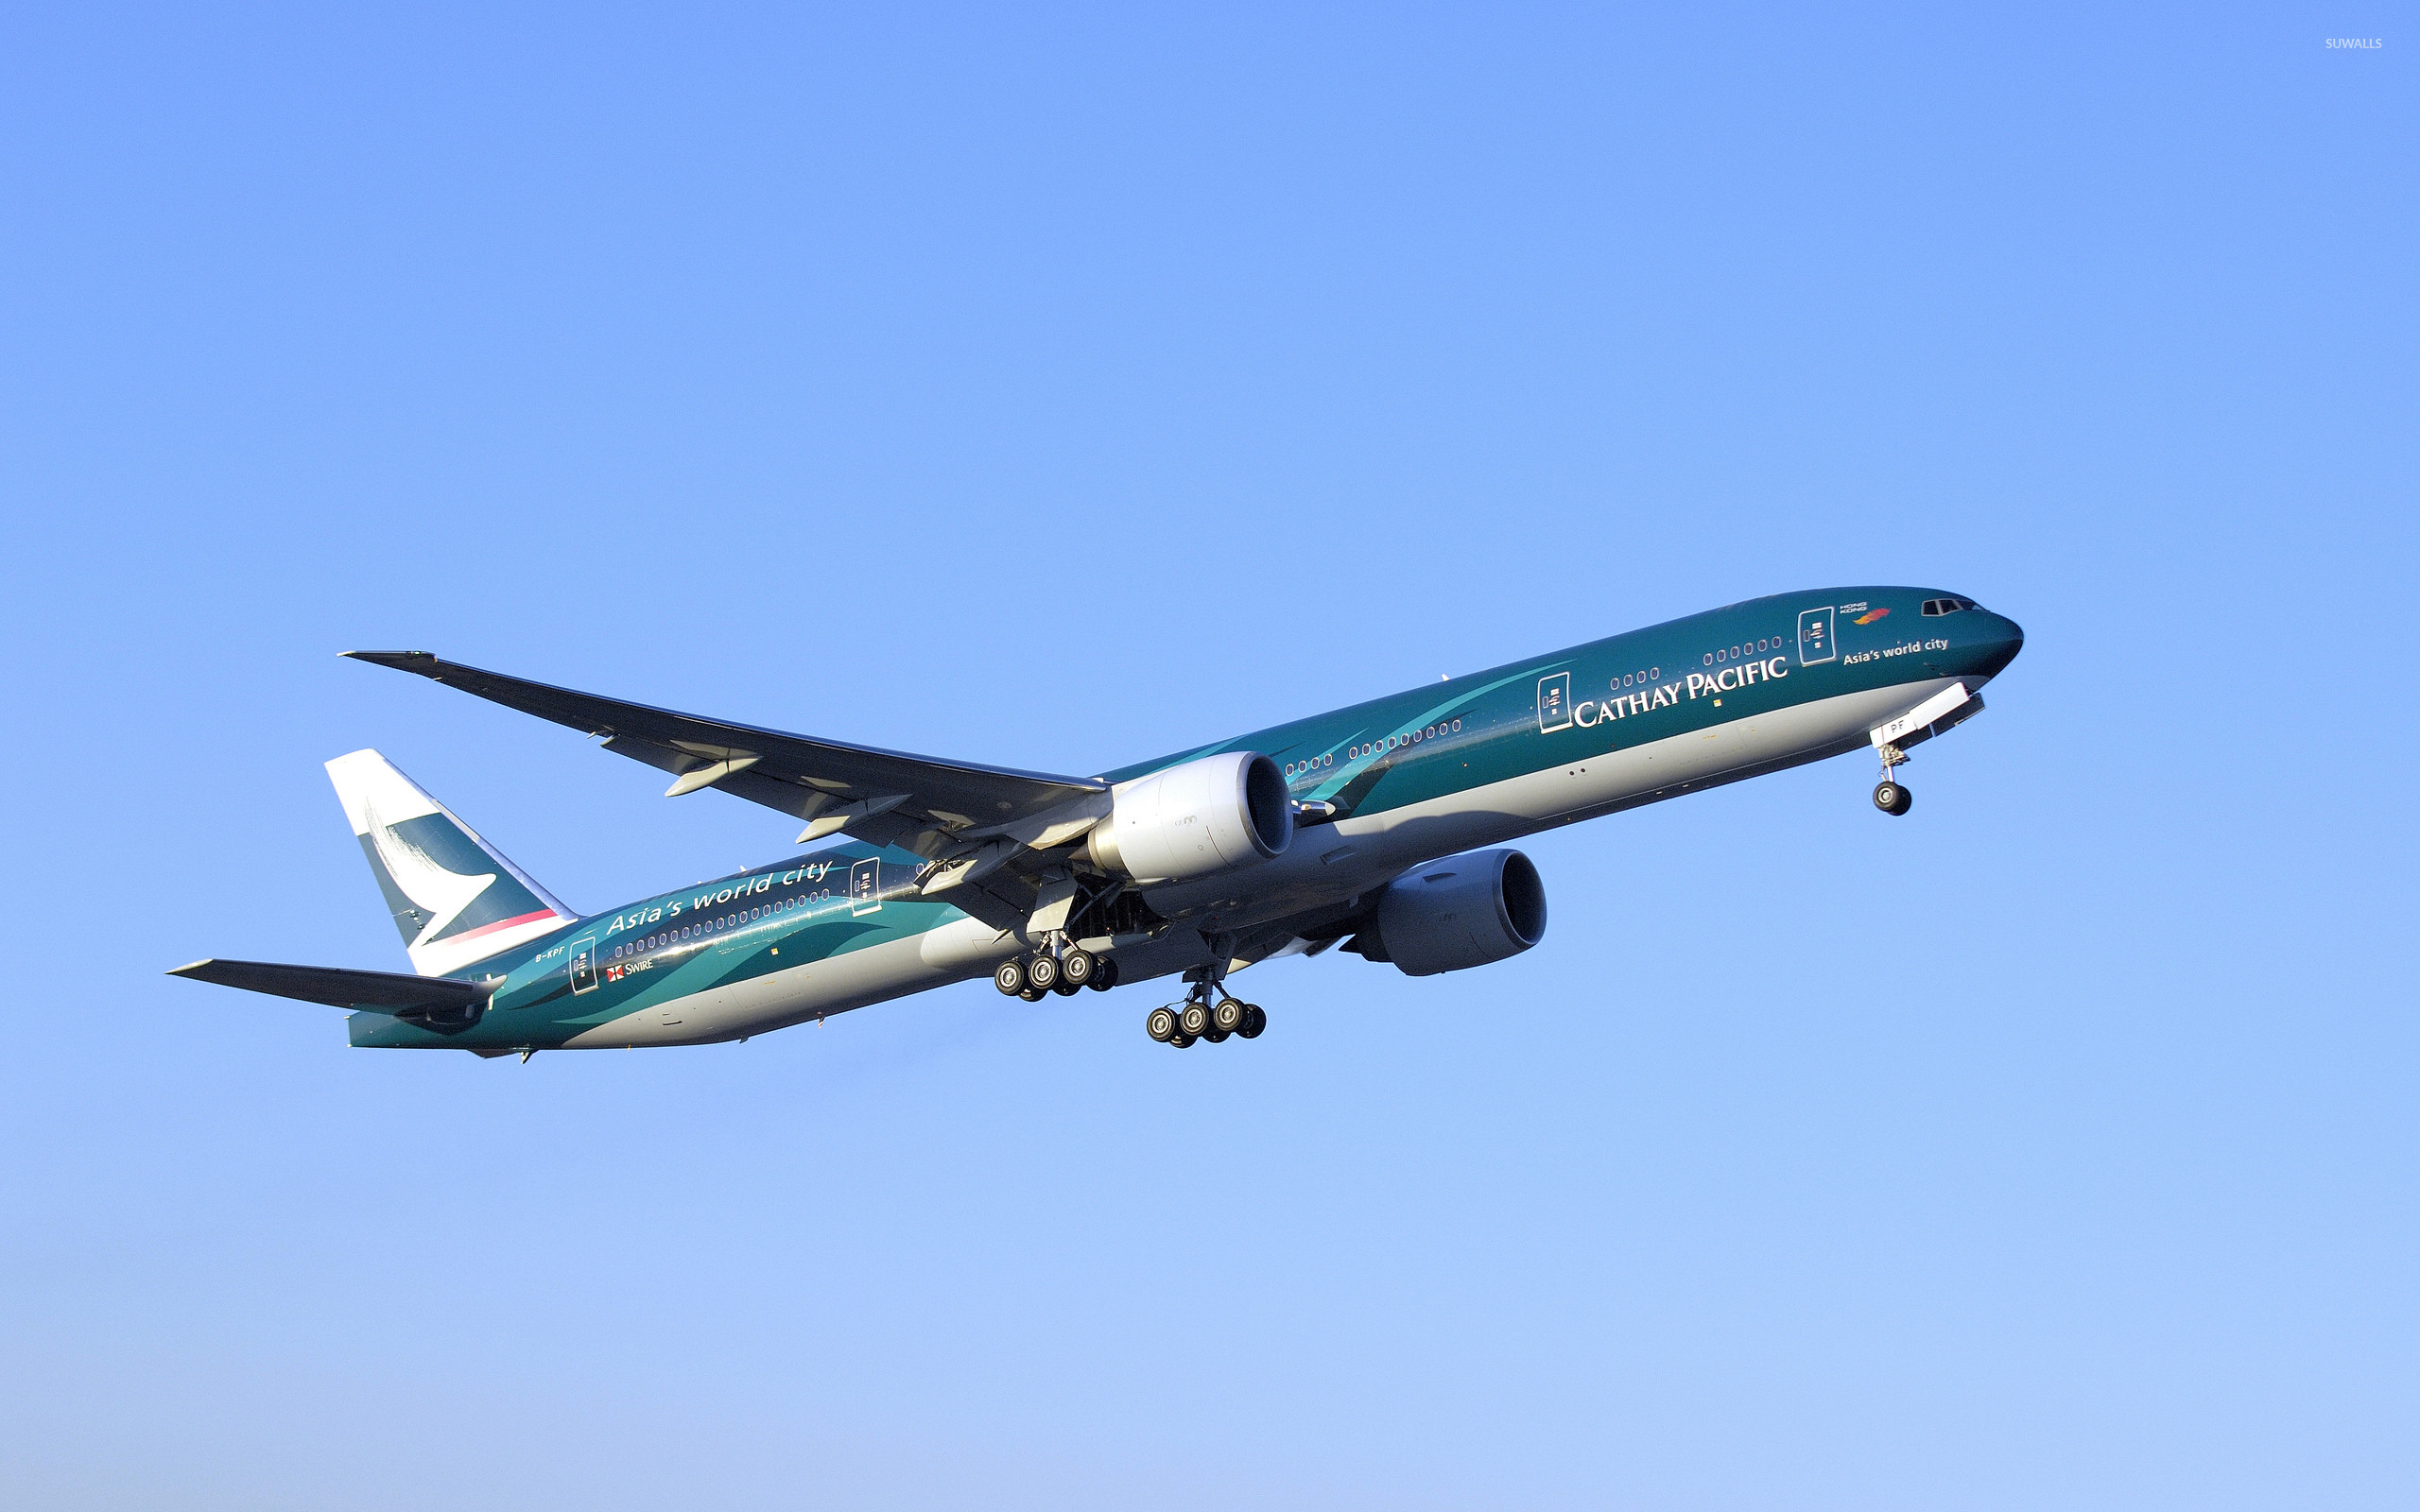 Boeing 777 Wallpaper HD (66+ images)